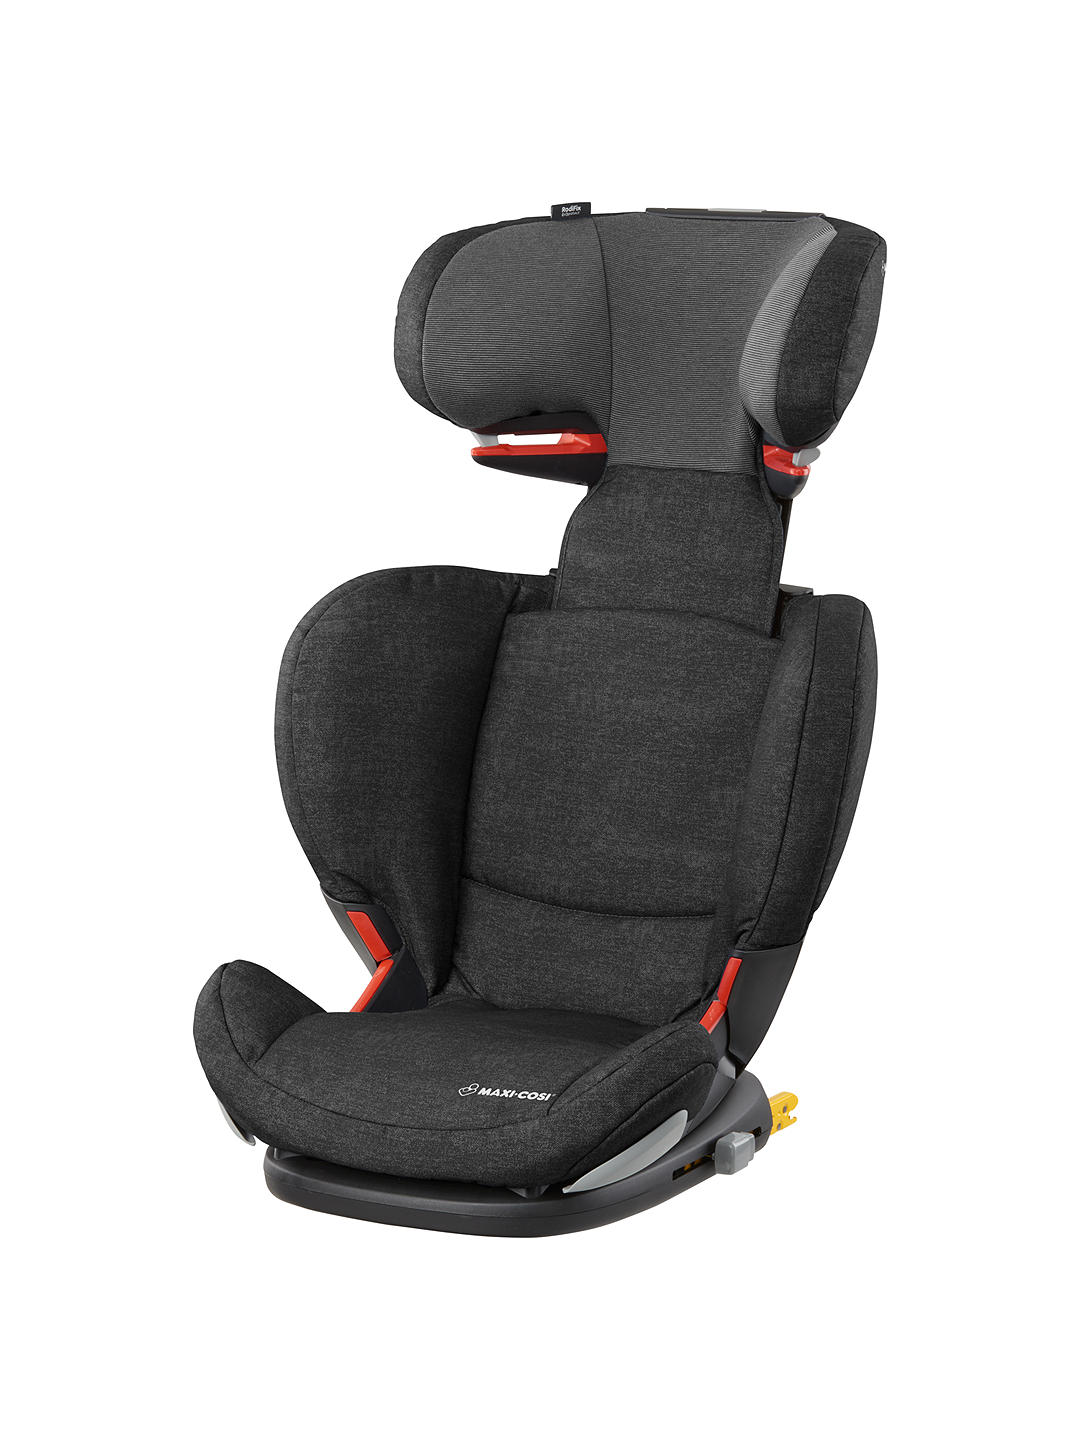 maxi cosi rodifix air protect group 2 3 car seat 15 36kg 3 5 12 years old baby concierge. Black Bedroom Furniture Sets. Home Design Ideas